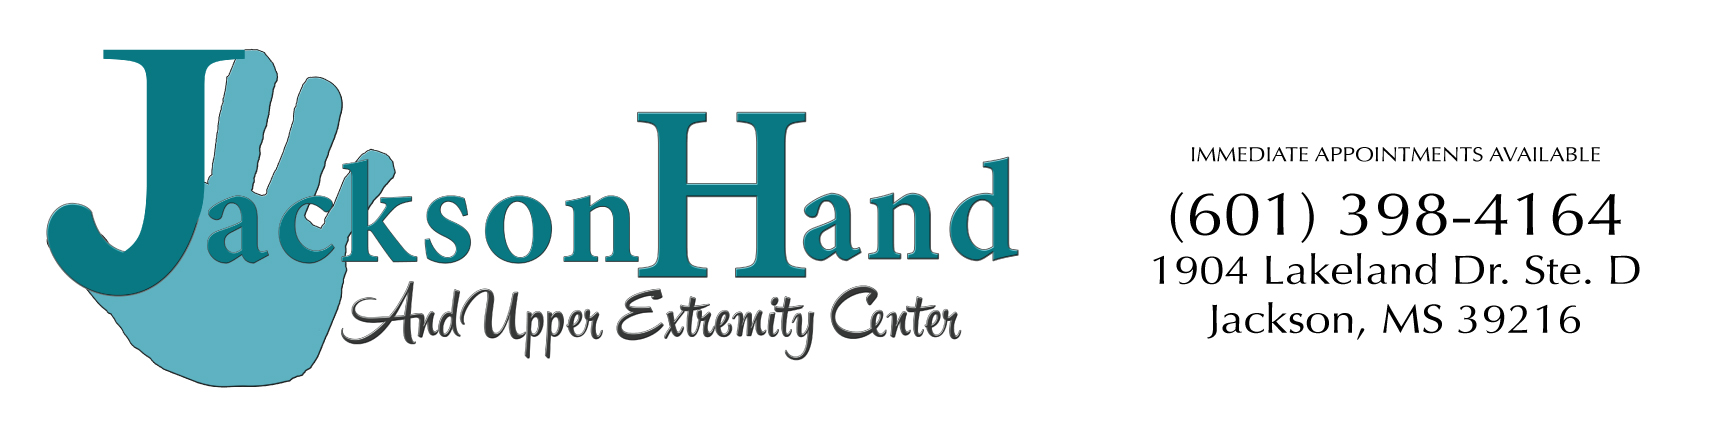 Jackson Physical Therapy and Hand Ctr in Jackson MS